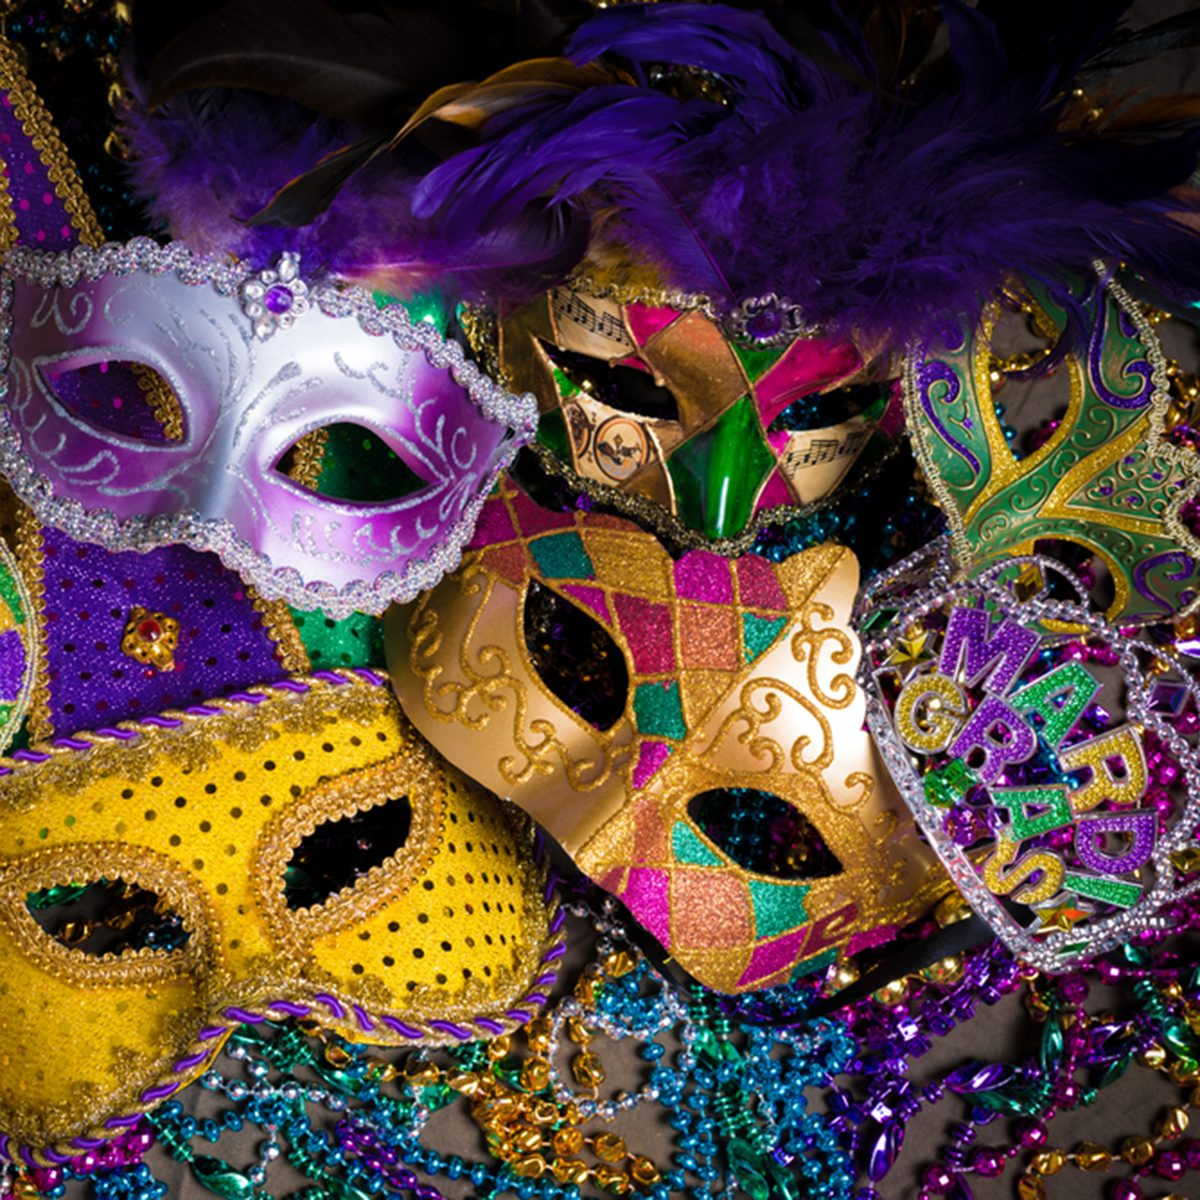 A group of venetian, mardi gras mask or disguise on a dark background; Shutterstock ID 247615072